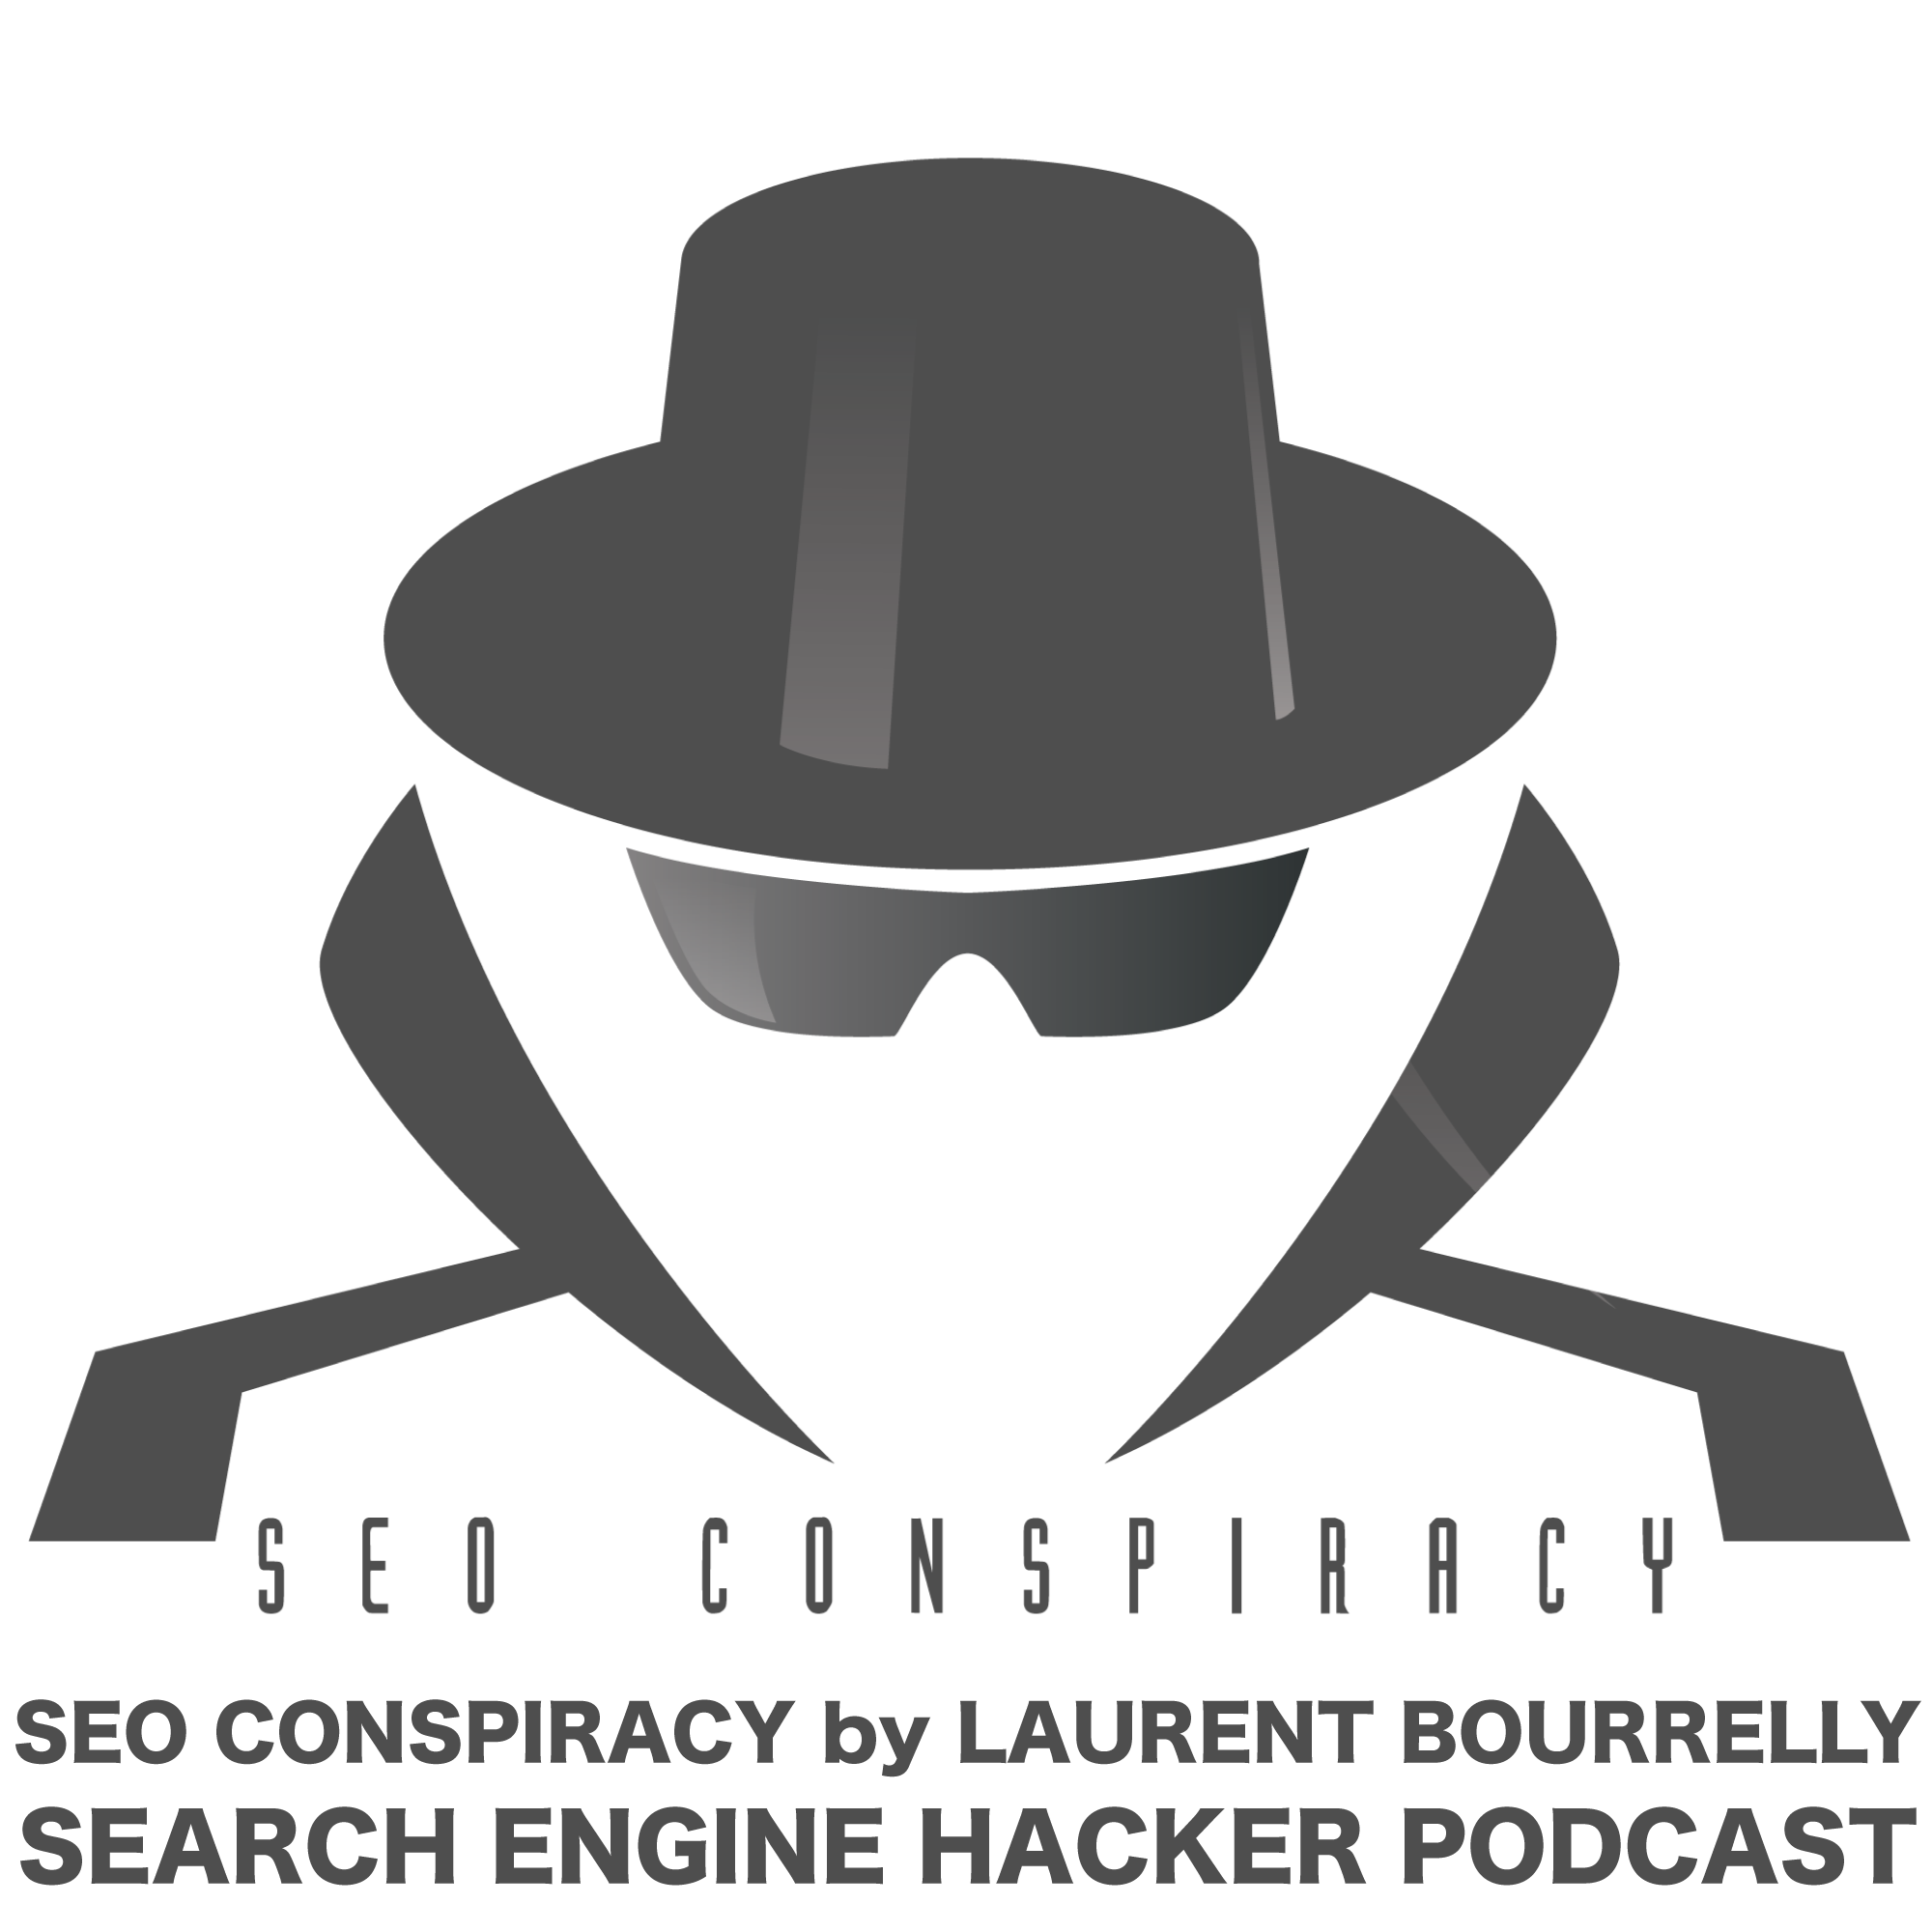 Is a 301 Redirect from an Expired Domain good for Google SEO?